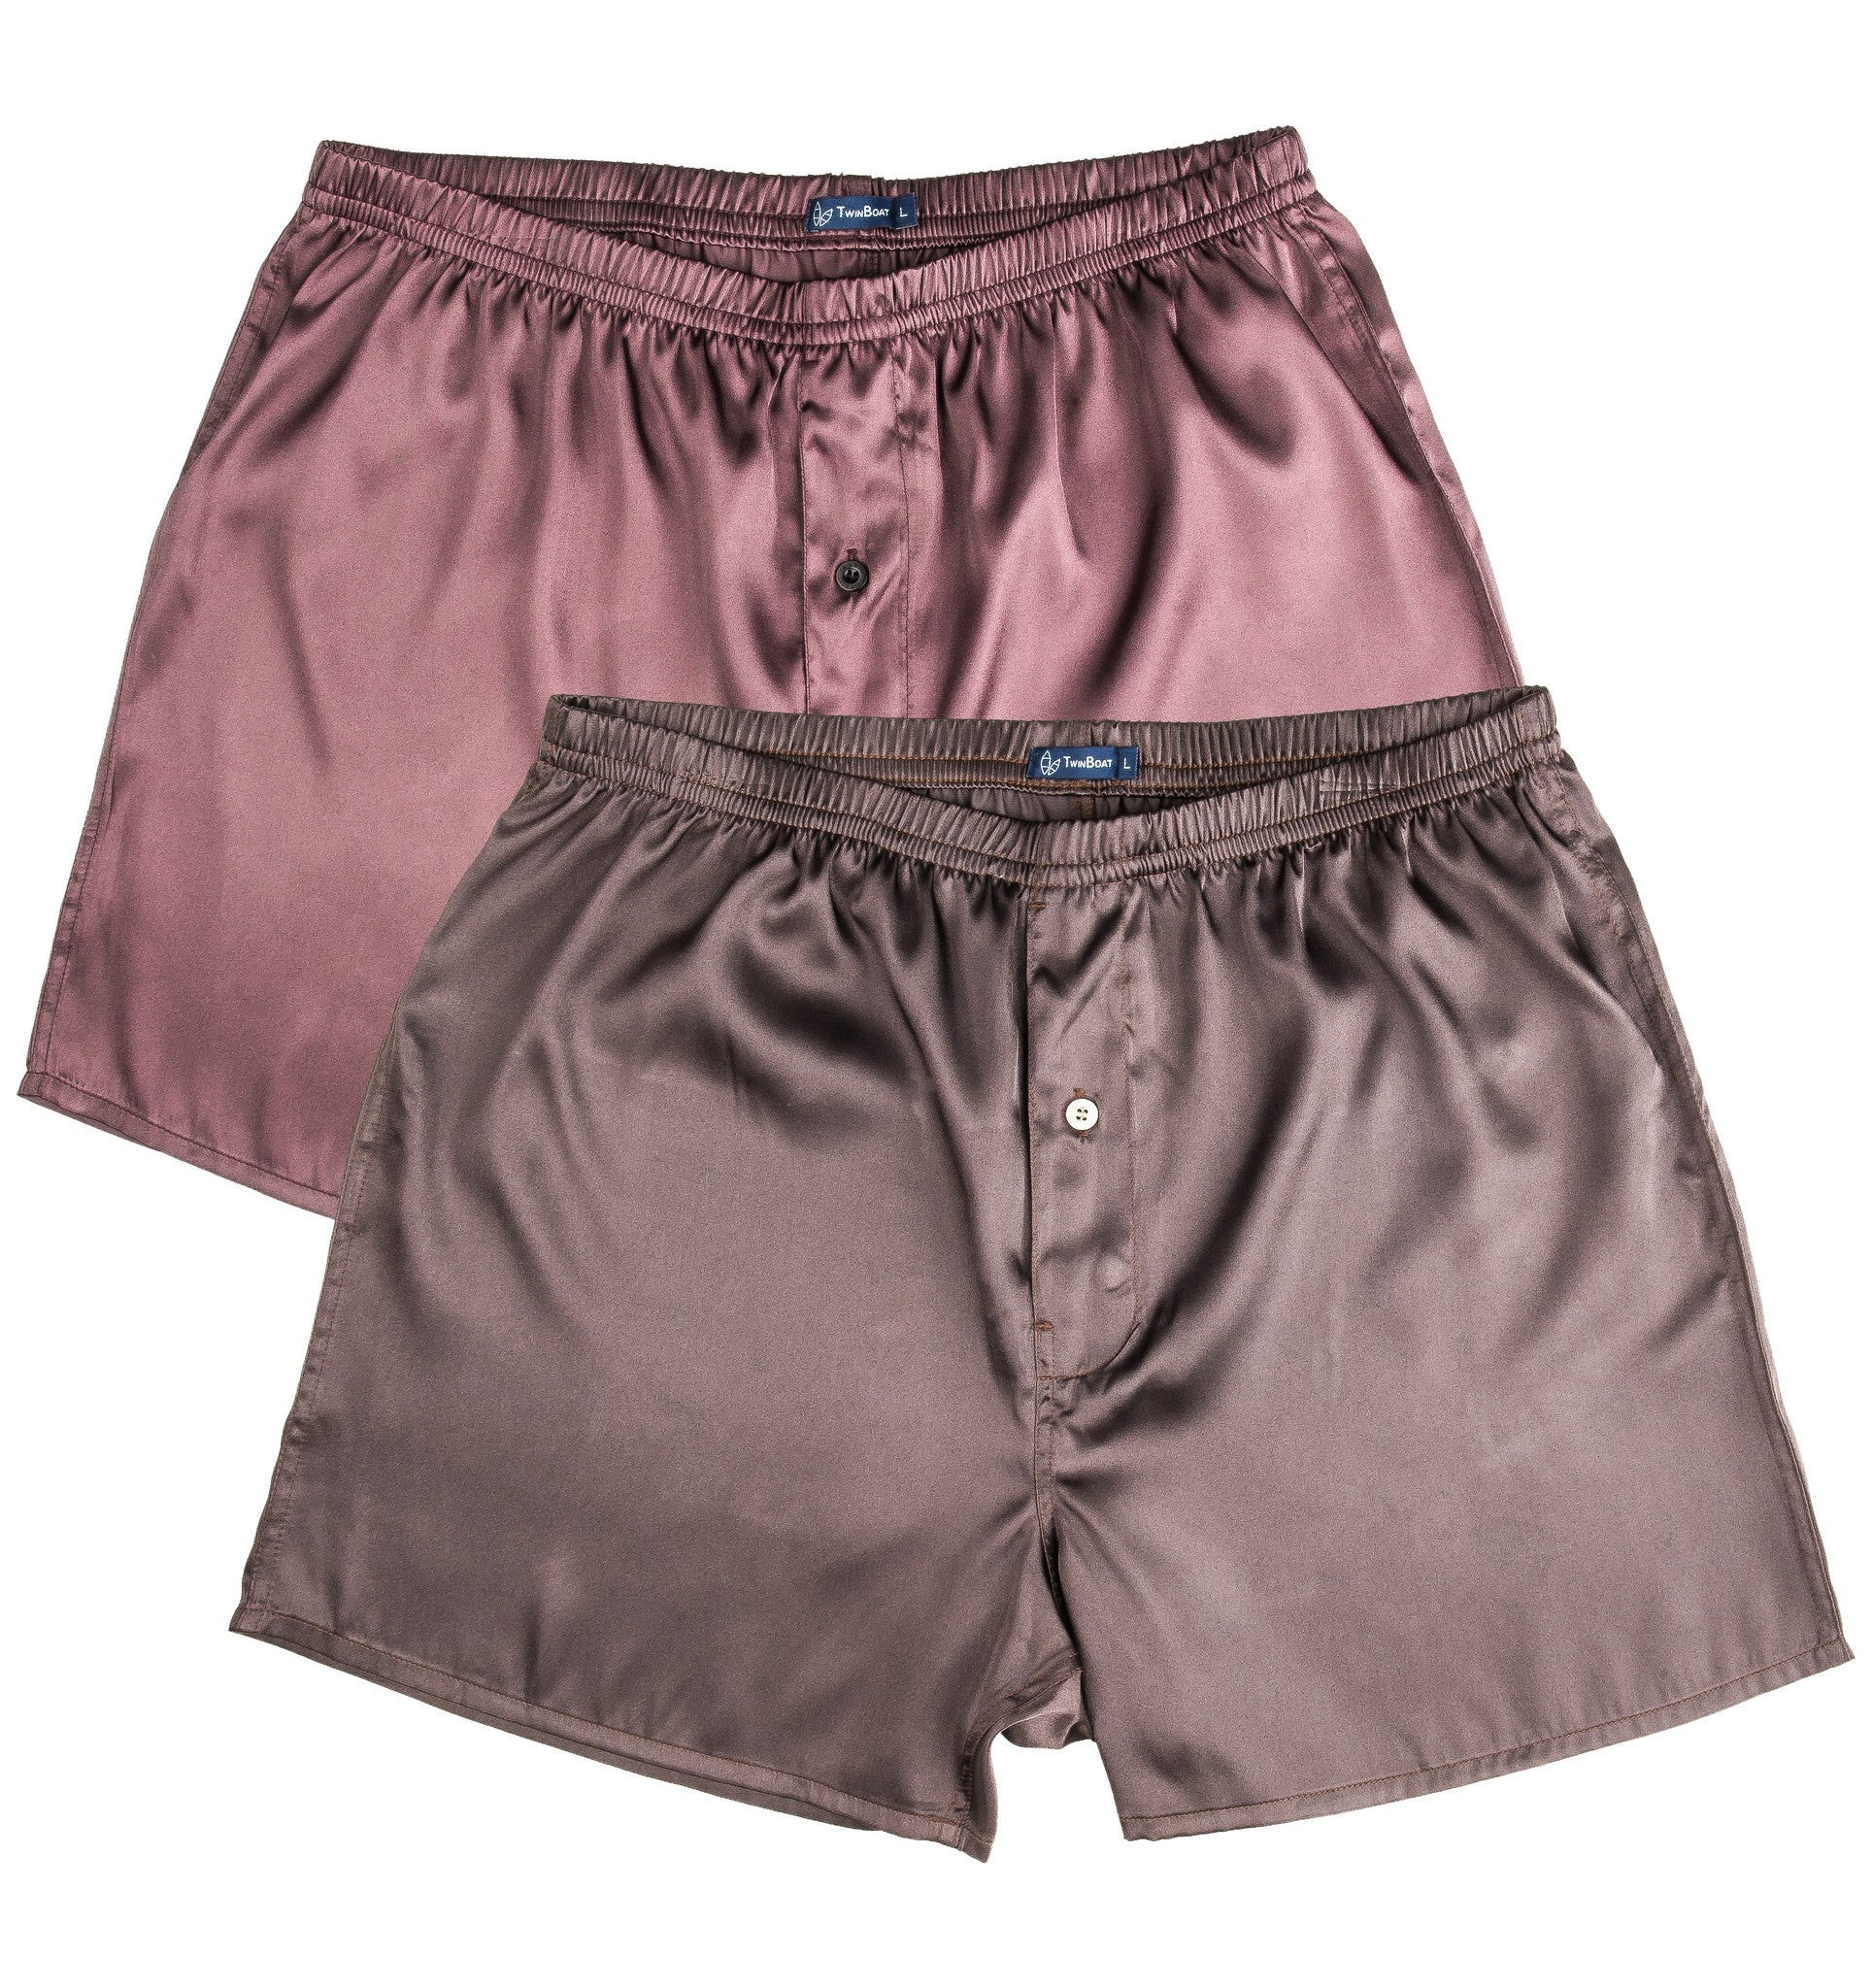 Men's Satin Boxers (2-Pack)